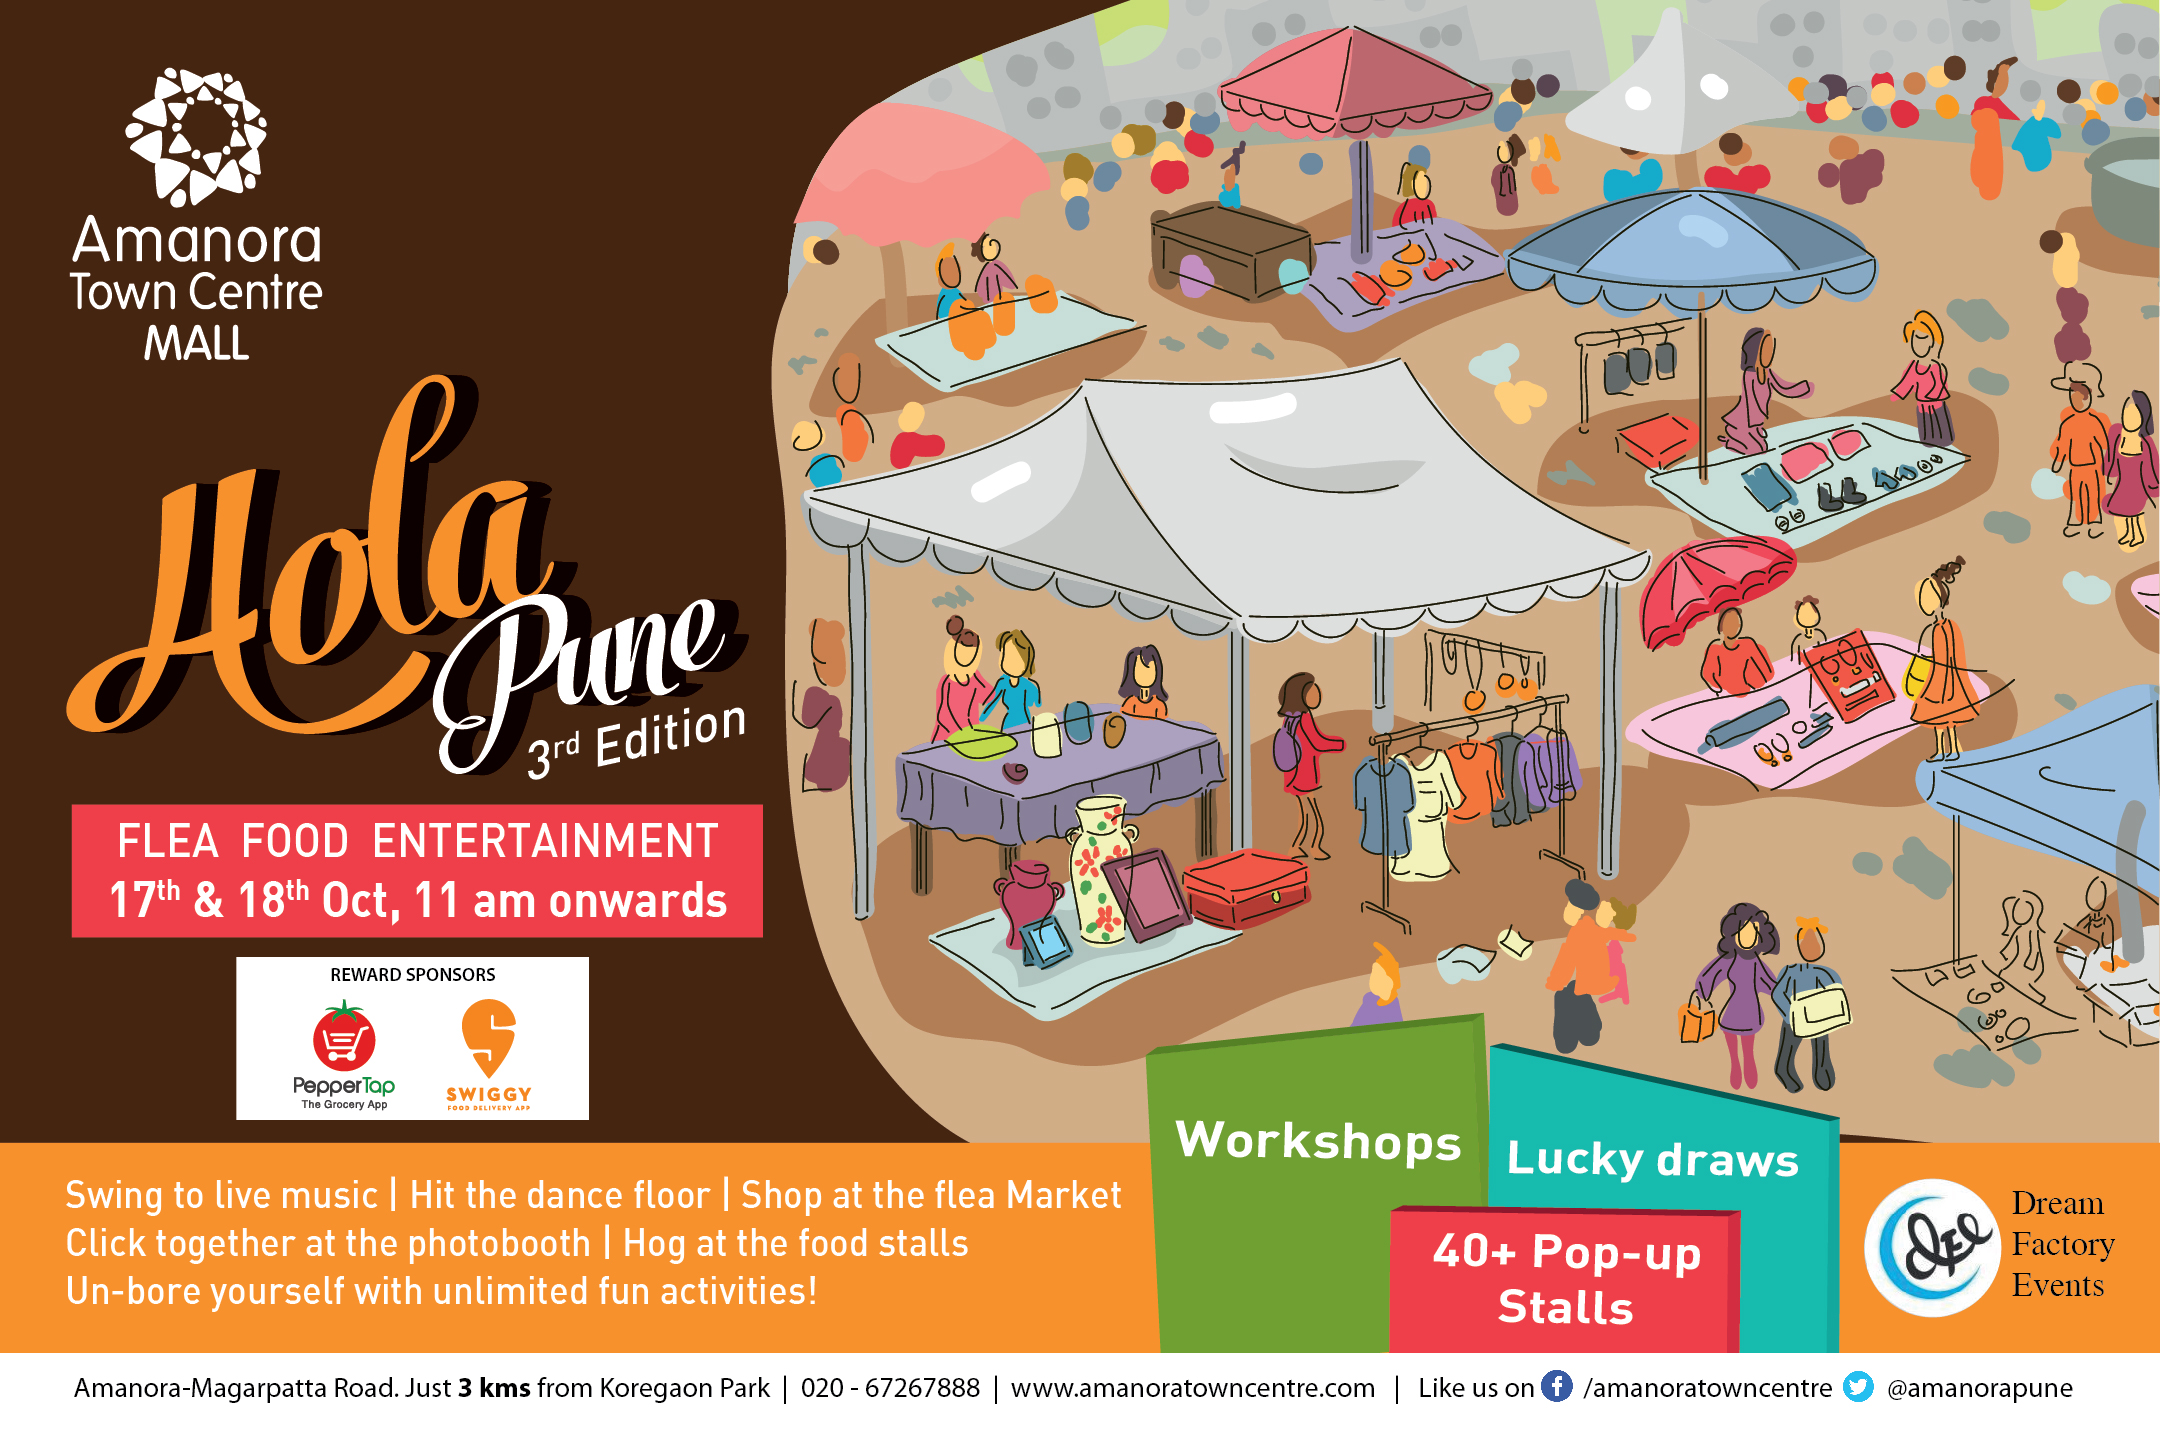 HOLA PUNE 3rd EDITION